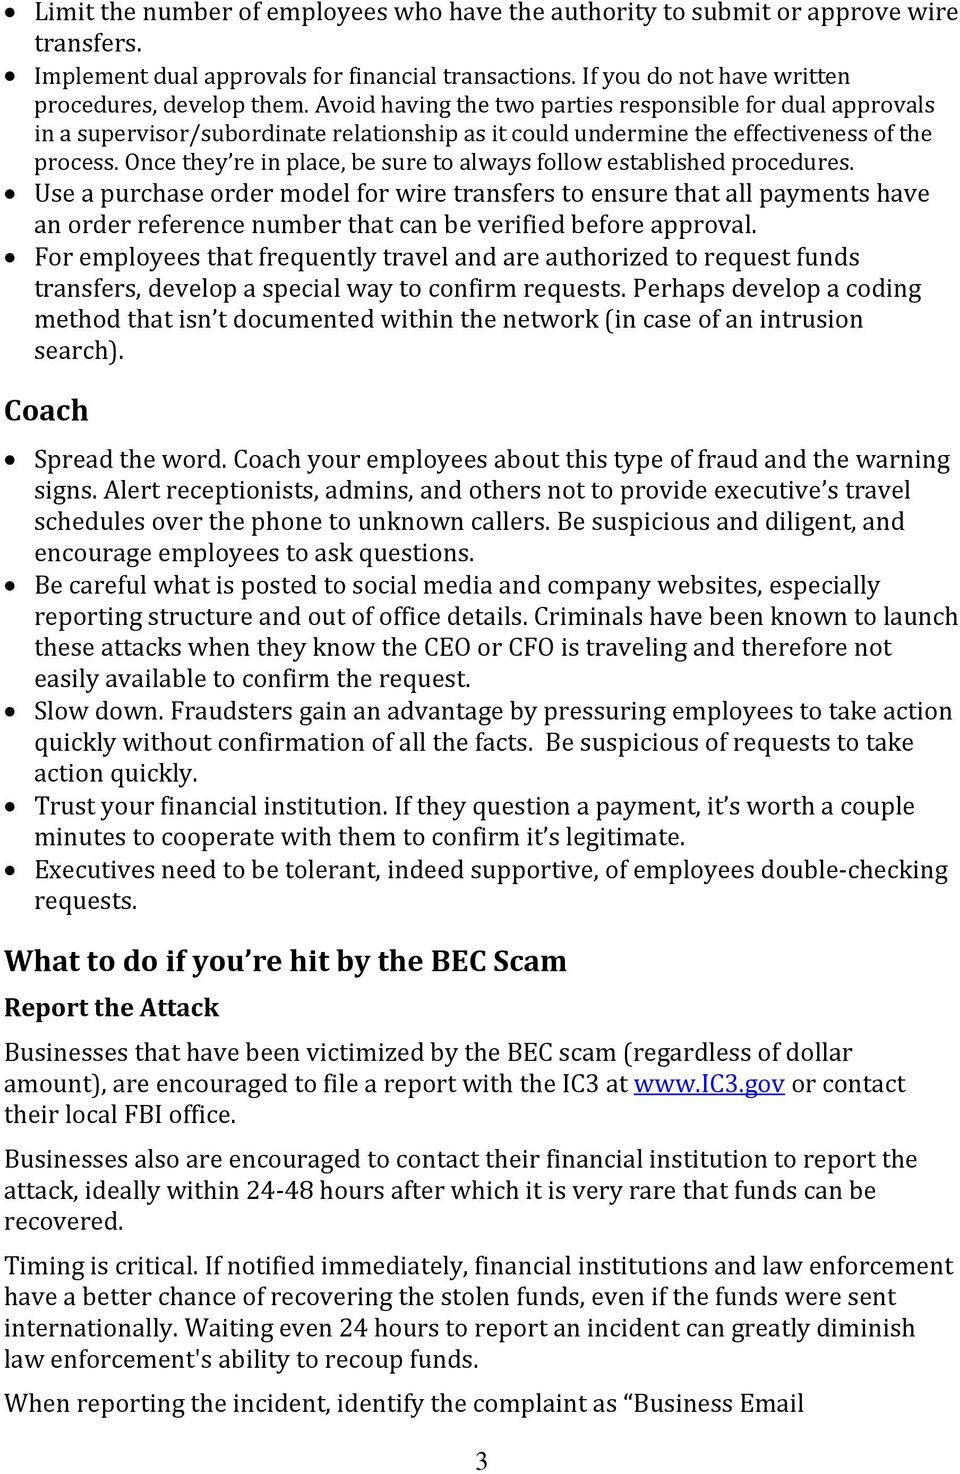 Business Compromise Scam Pdf Everbank Wiring Instructions Once They Re In Place Be Sure To Always Follow Established Procedures